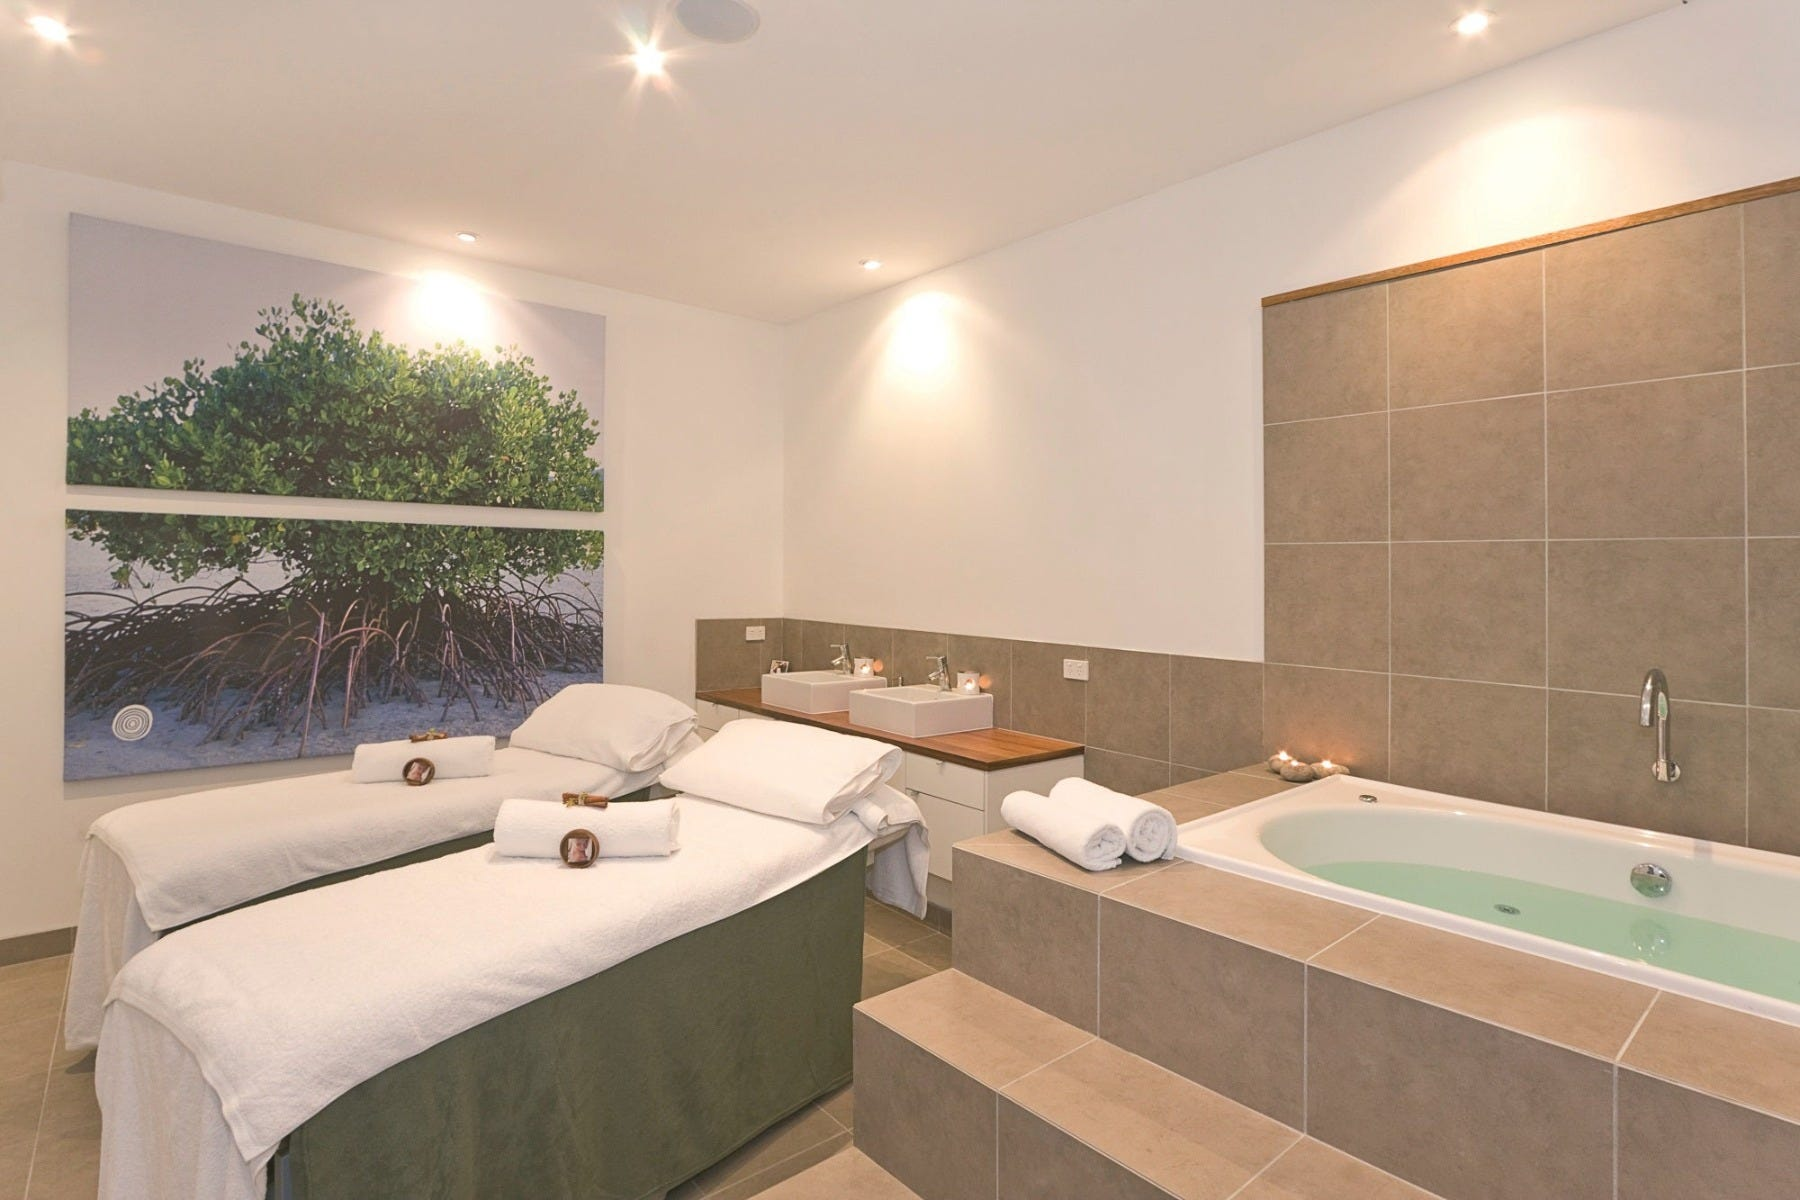 Rozelle Day Spa Treatment Room